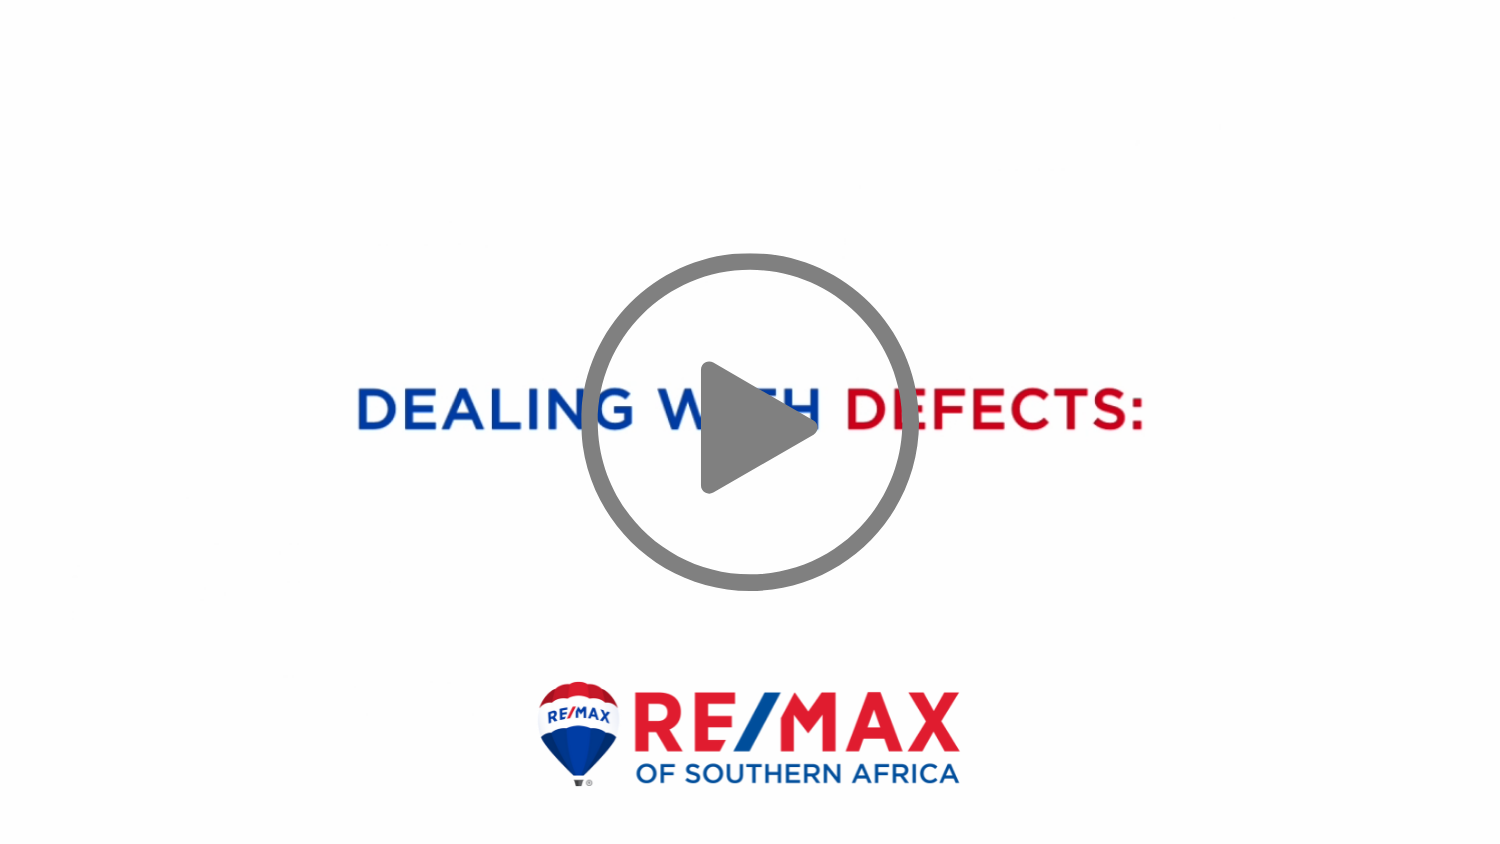 DEALING WITH DEFECTS WHEN BUYING A HOME